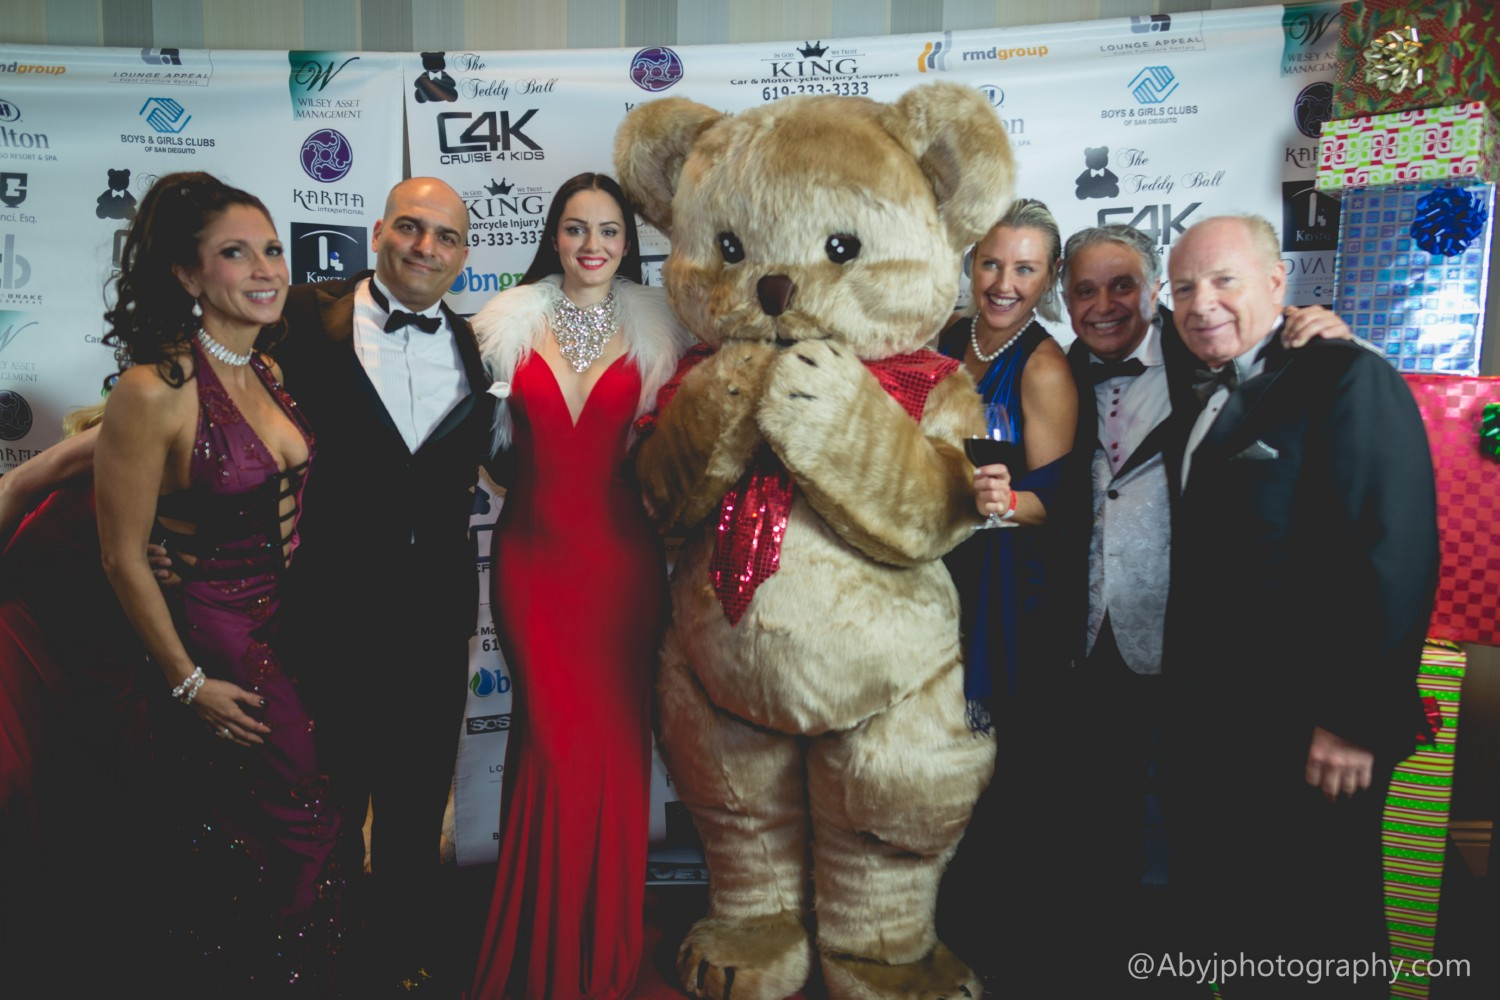 ABYJ_Photography_2016_Teddy_Ball - 186.jpg